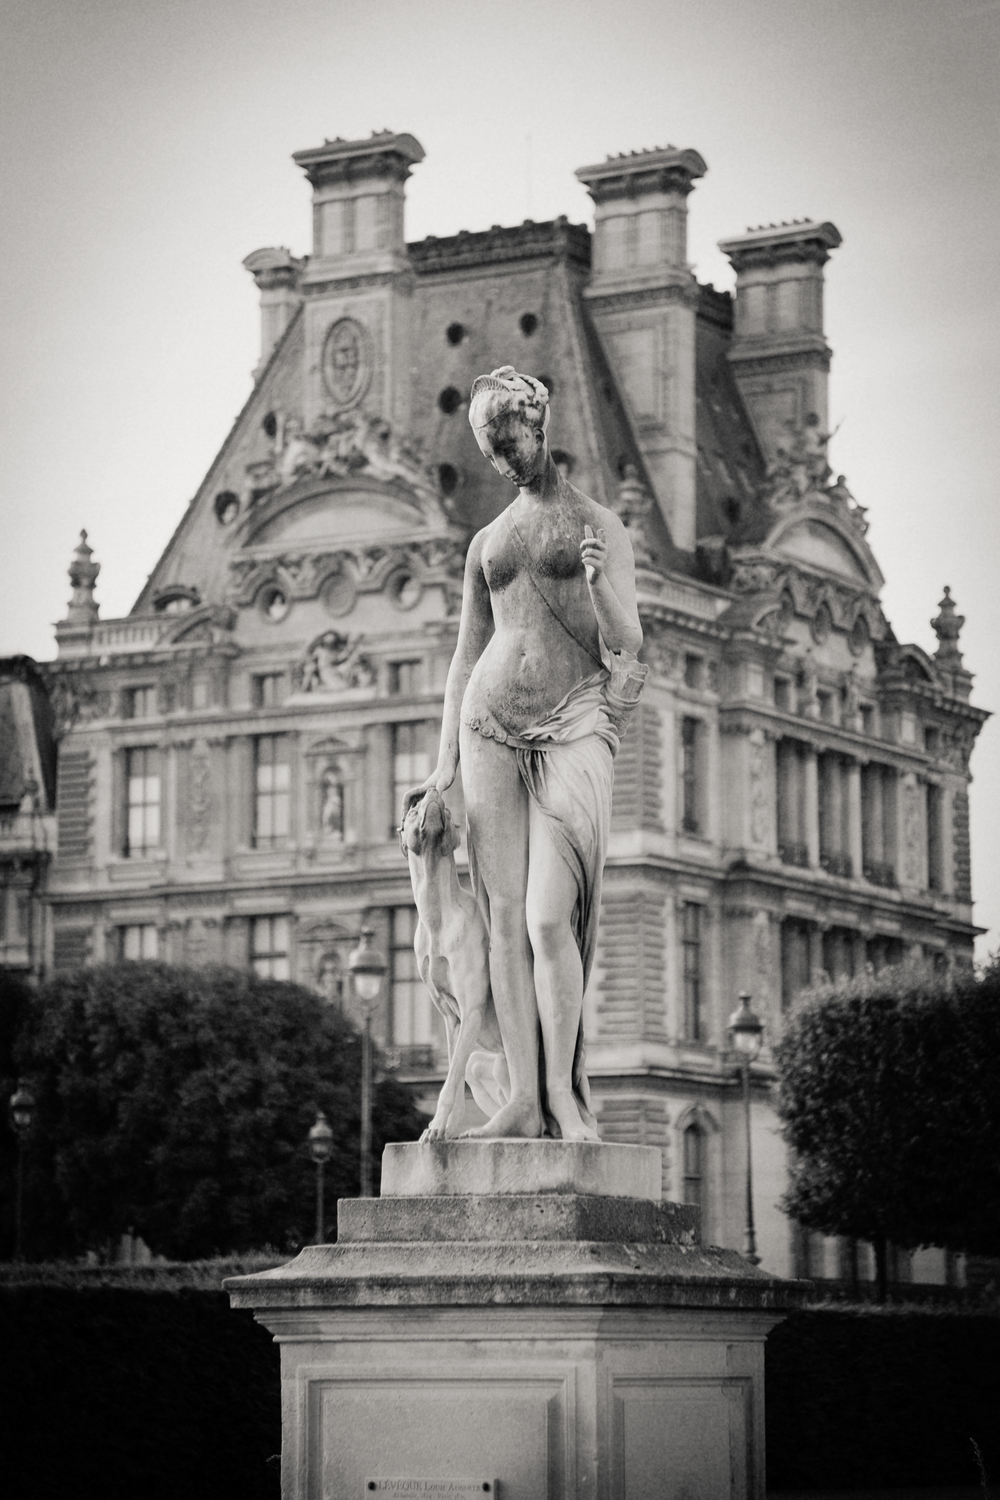 statue outside Louvre, Paris 2014.